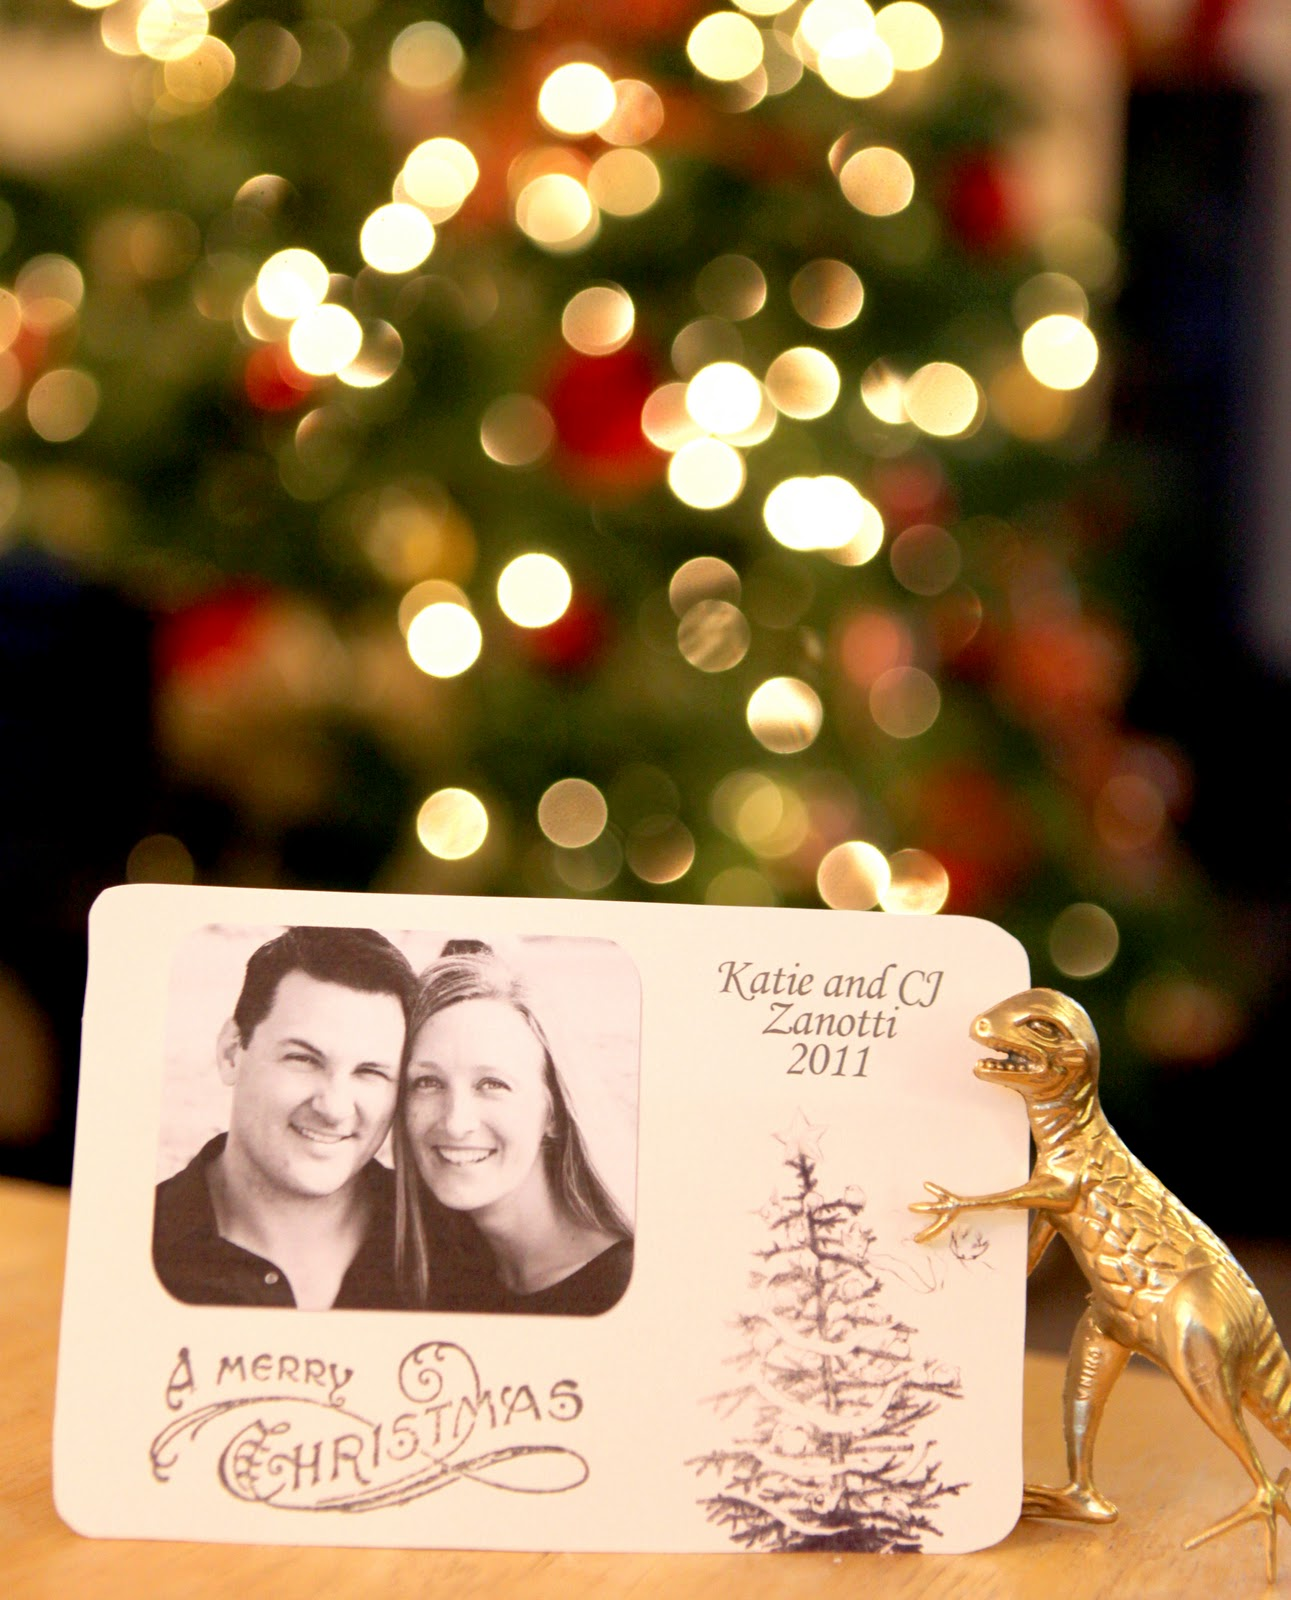 Chloe Moore Photography // The Blog: Free Christmas Card